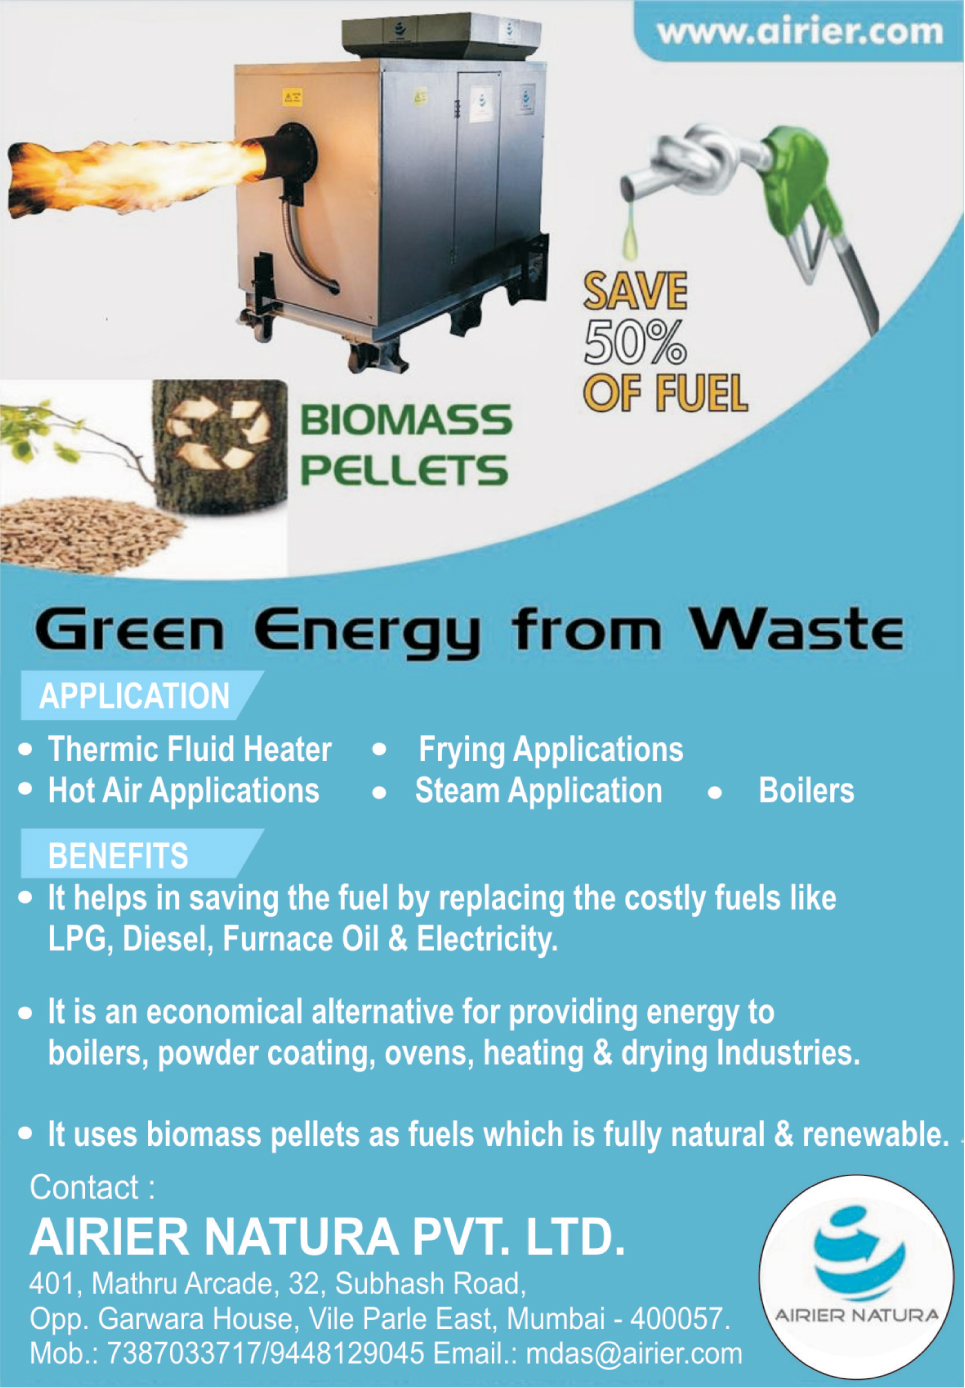 Biomass Burners,Thermic Fluid Heater, Frying Applications, Boilers, Steam Applications, Hot Air Applications